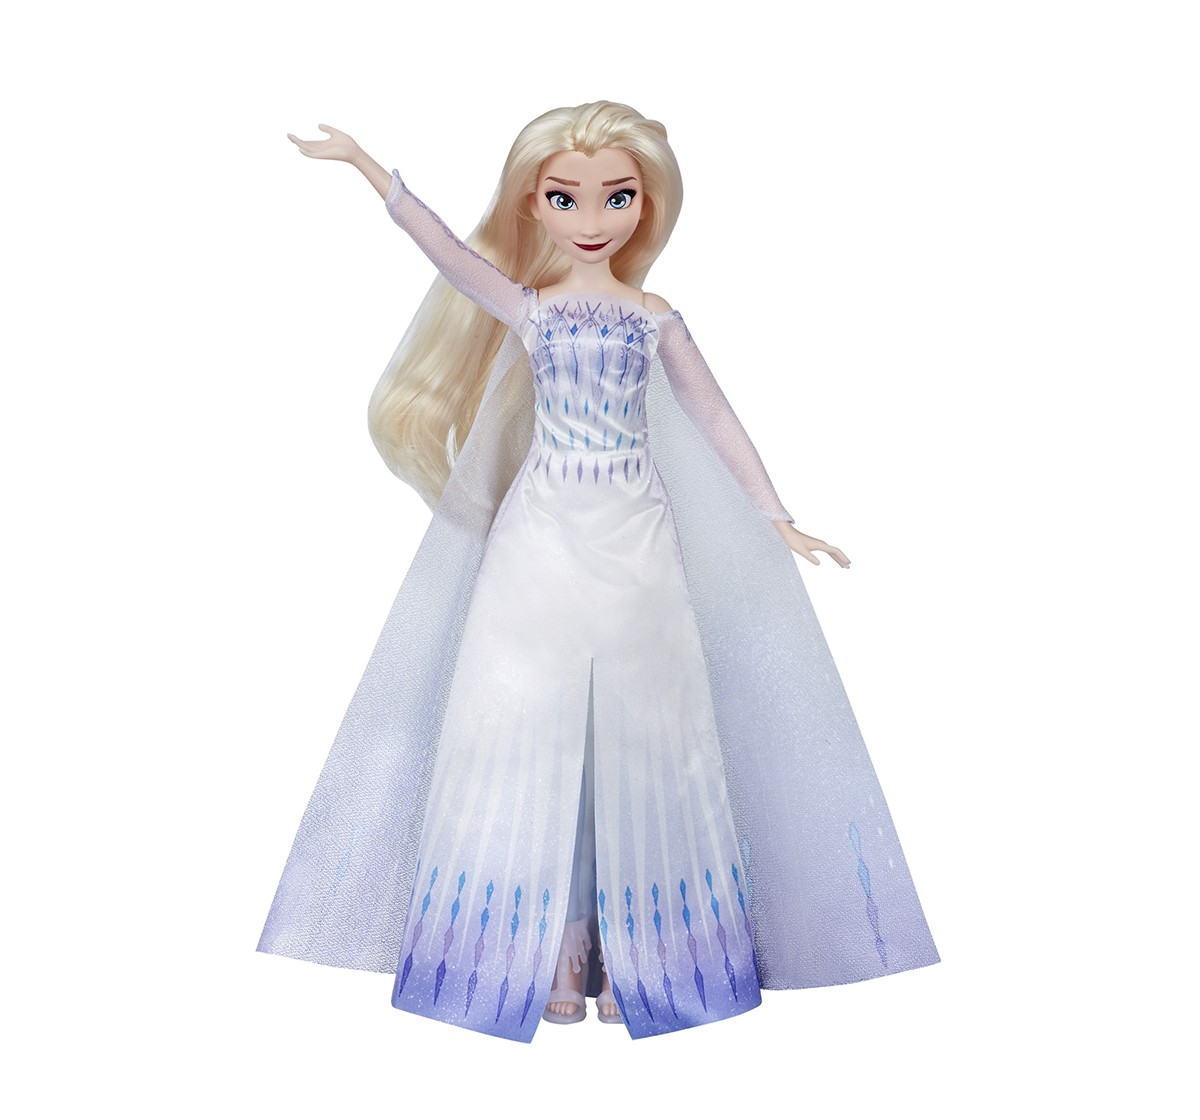 """Disney Frozen Musical Adventure Elsa Singing Doll, Sings """"Show Yourself"""" Song from Disney's Frozen 2 Movie, Elsa Toy for Kids  Dolls & Accessories for GIRLS age 3Y+"""